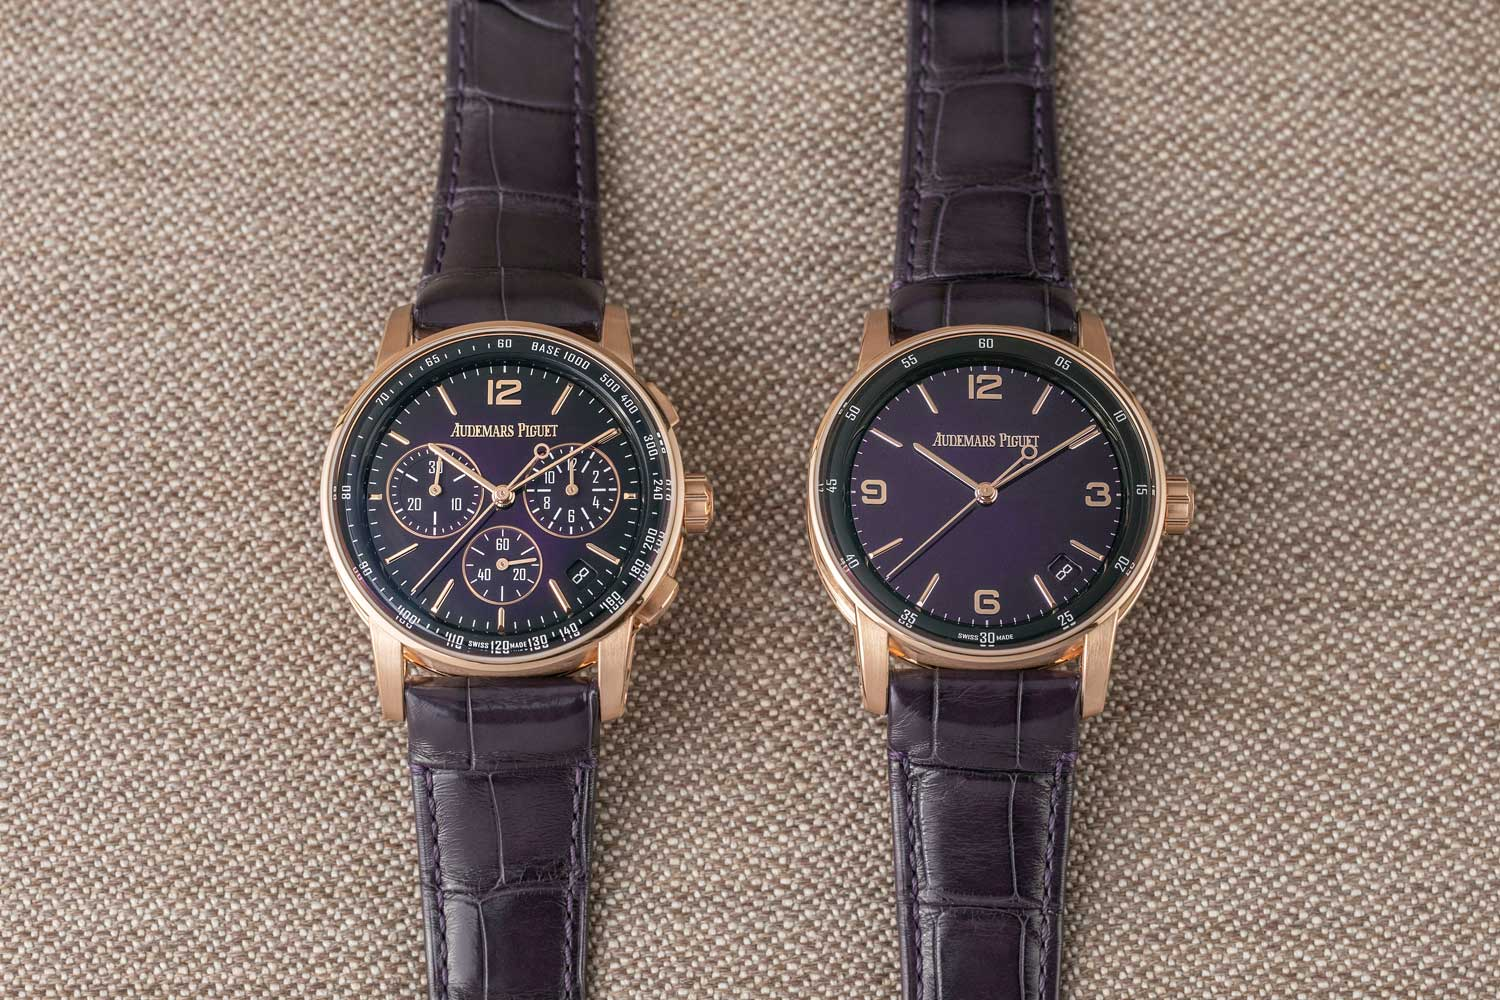 The 2020 of Code 11.59 by Audemars Piguet timepieces feature arresting and visually dynamic dials such as this pair in a smoked purple lacquered dial with sunburst pattern on the ref. 26393OR.OO.A616CR.01 selfwinding chronograph and the ref. 15210OR.OO.A616CR.01 time-only ©Revolution)